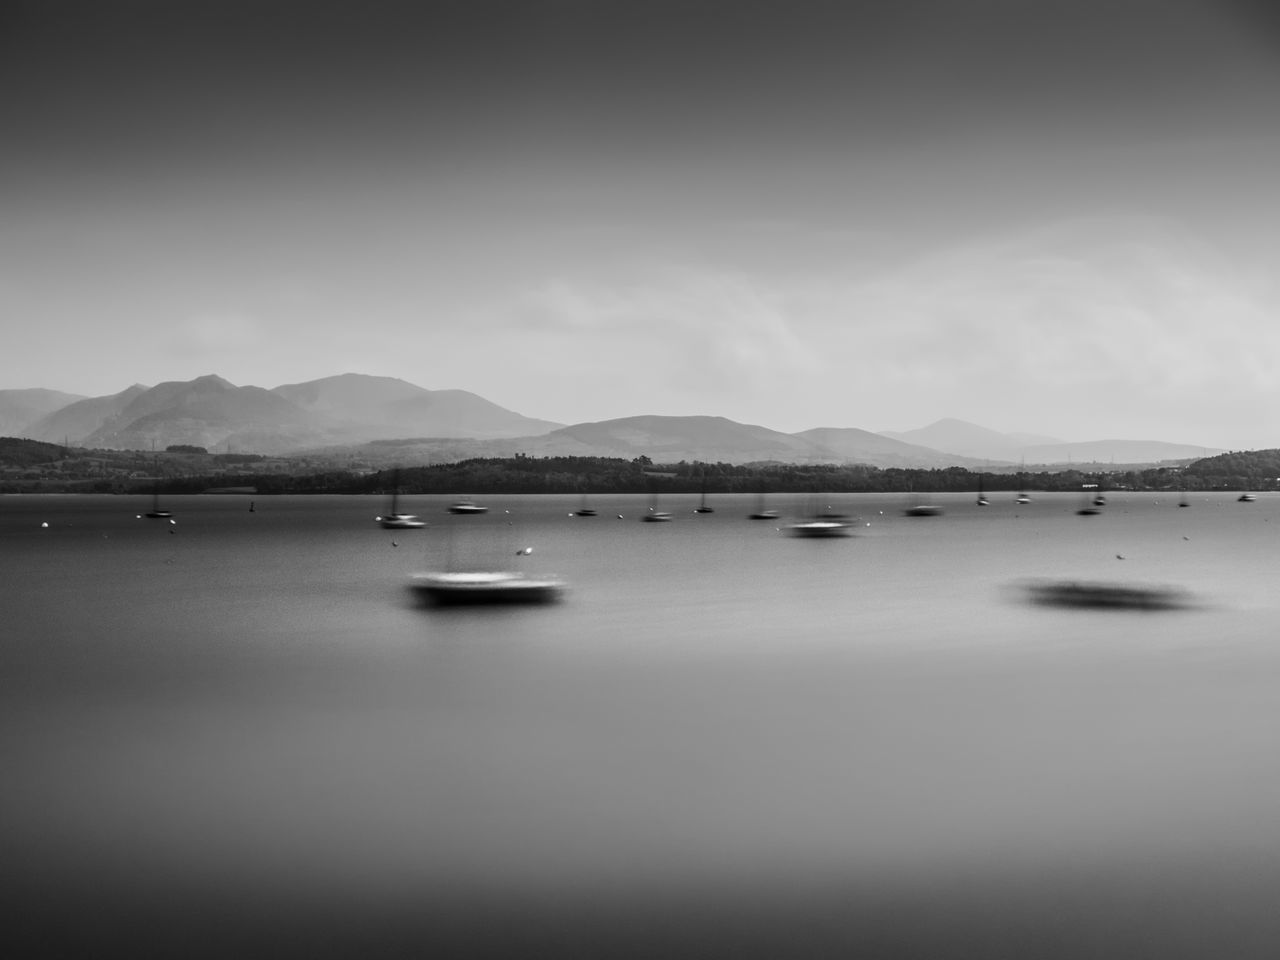 At Anchor, Beaumaris, Anglesey. Beauty In Nature Calm Cloud Cloud - Sky Cloudy Day Idyllic Landscape Mountain Mountain Range Nature No People Non-urban Scene Ocean Outdoors Overcast Remote Rippled Scenics Sky Tranquil Scene Tranquility Water The Great Outdoors - 2016 EyeEm Awards The Great Outdoors With Adobe